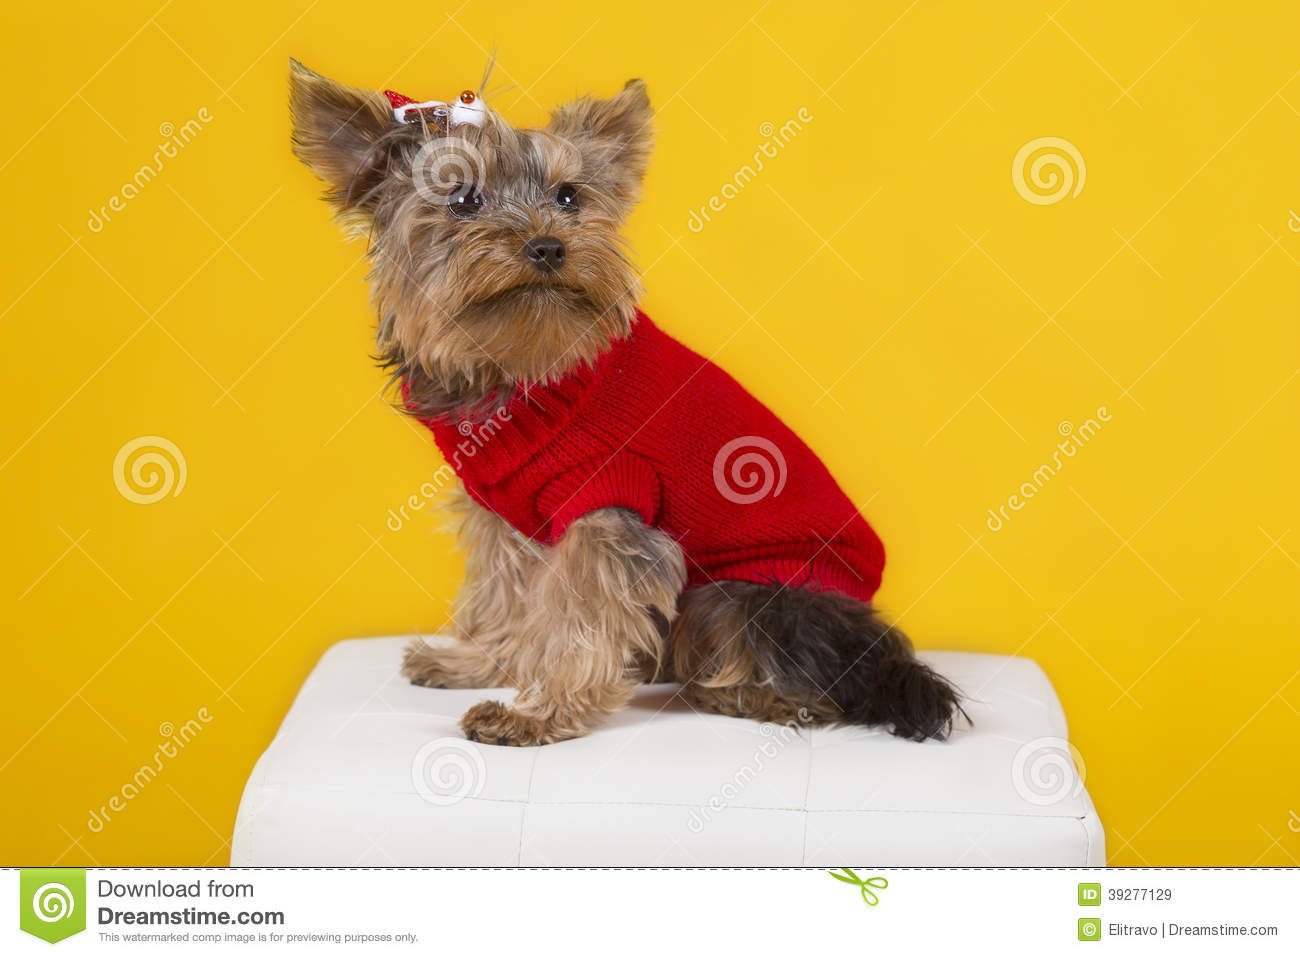 Dog yorkshire terrier in clothes